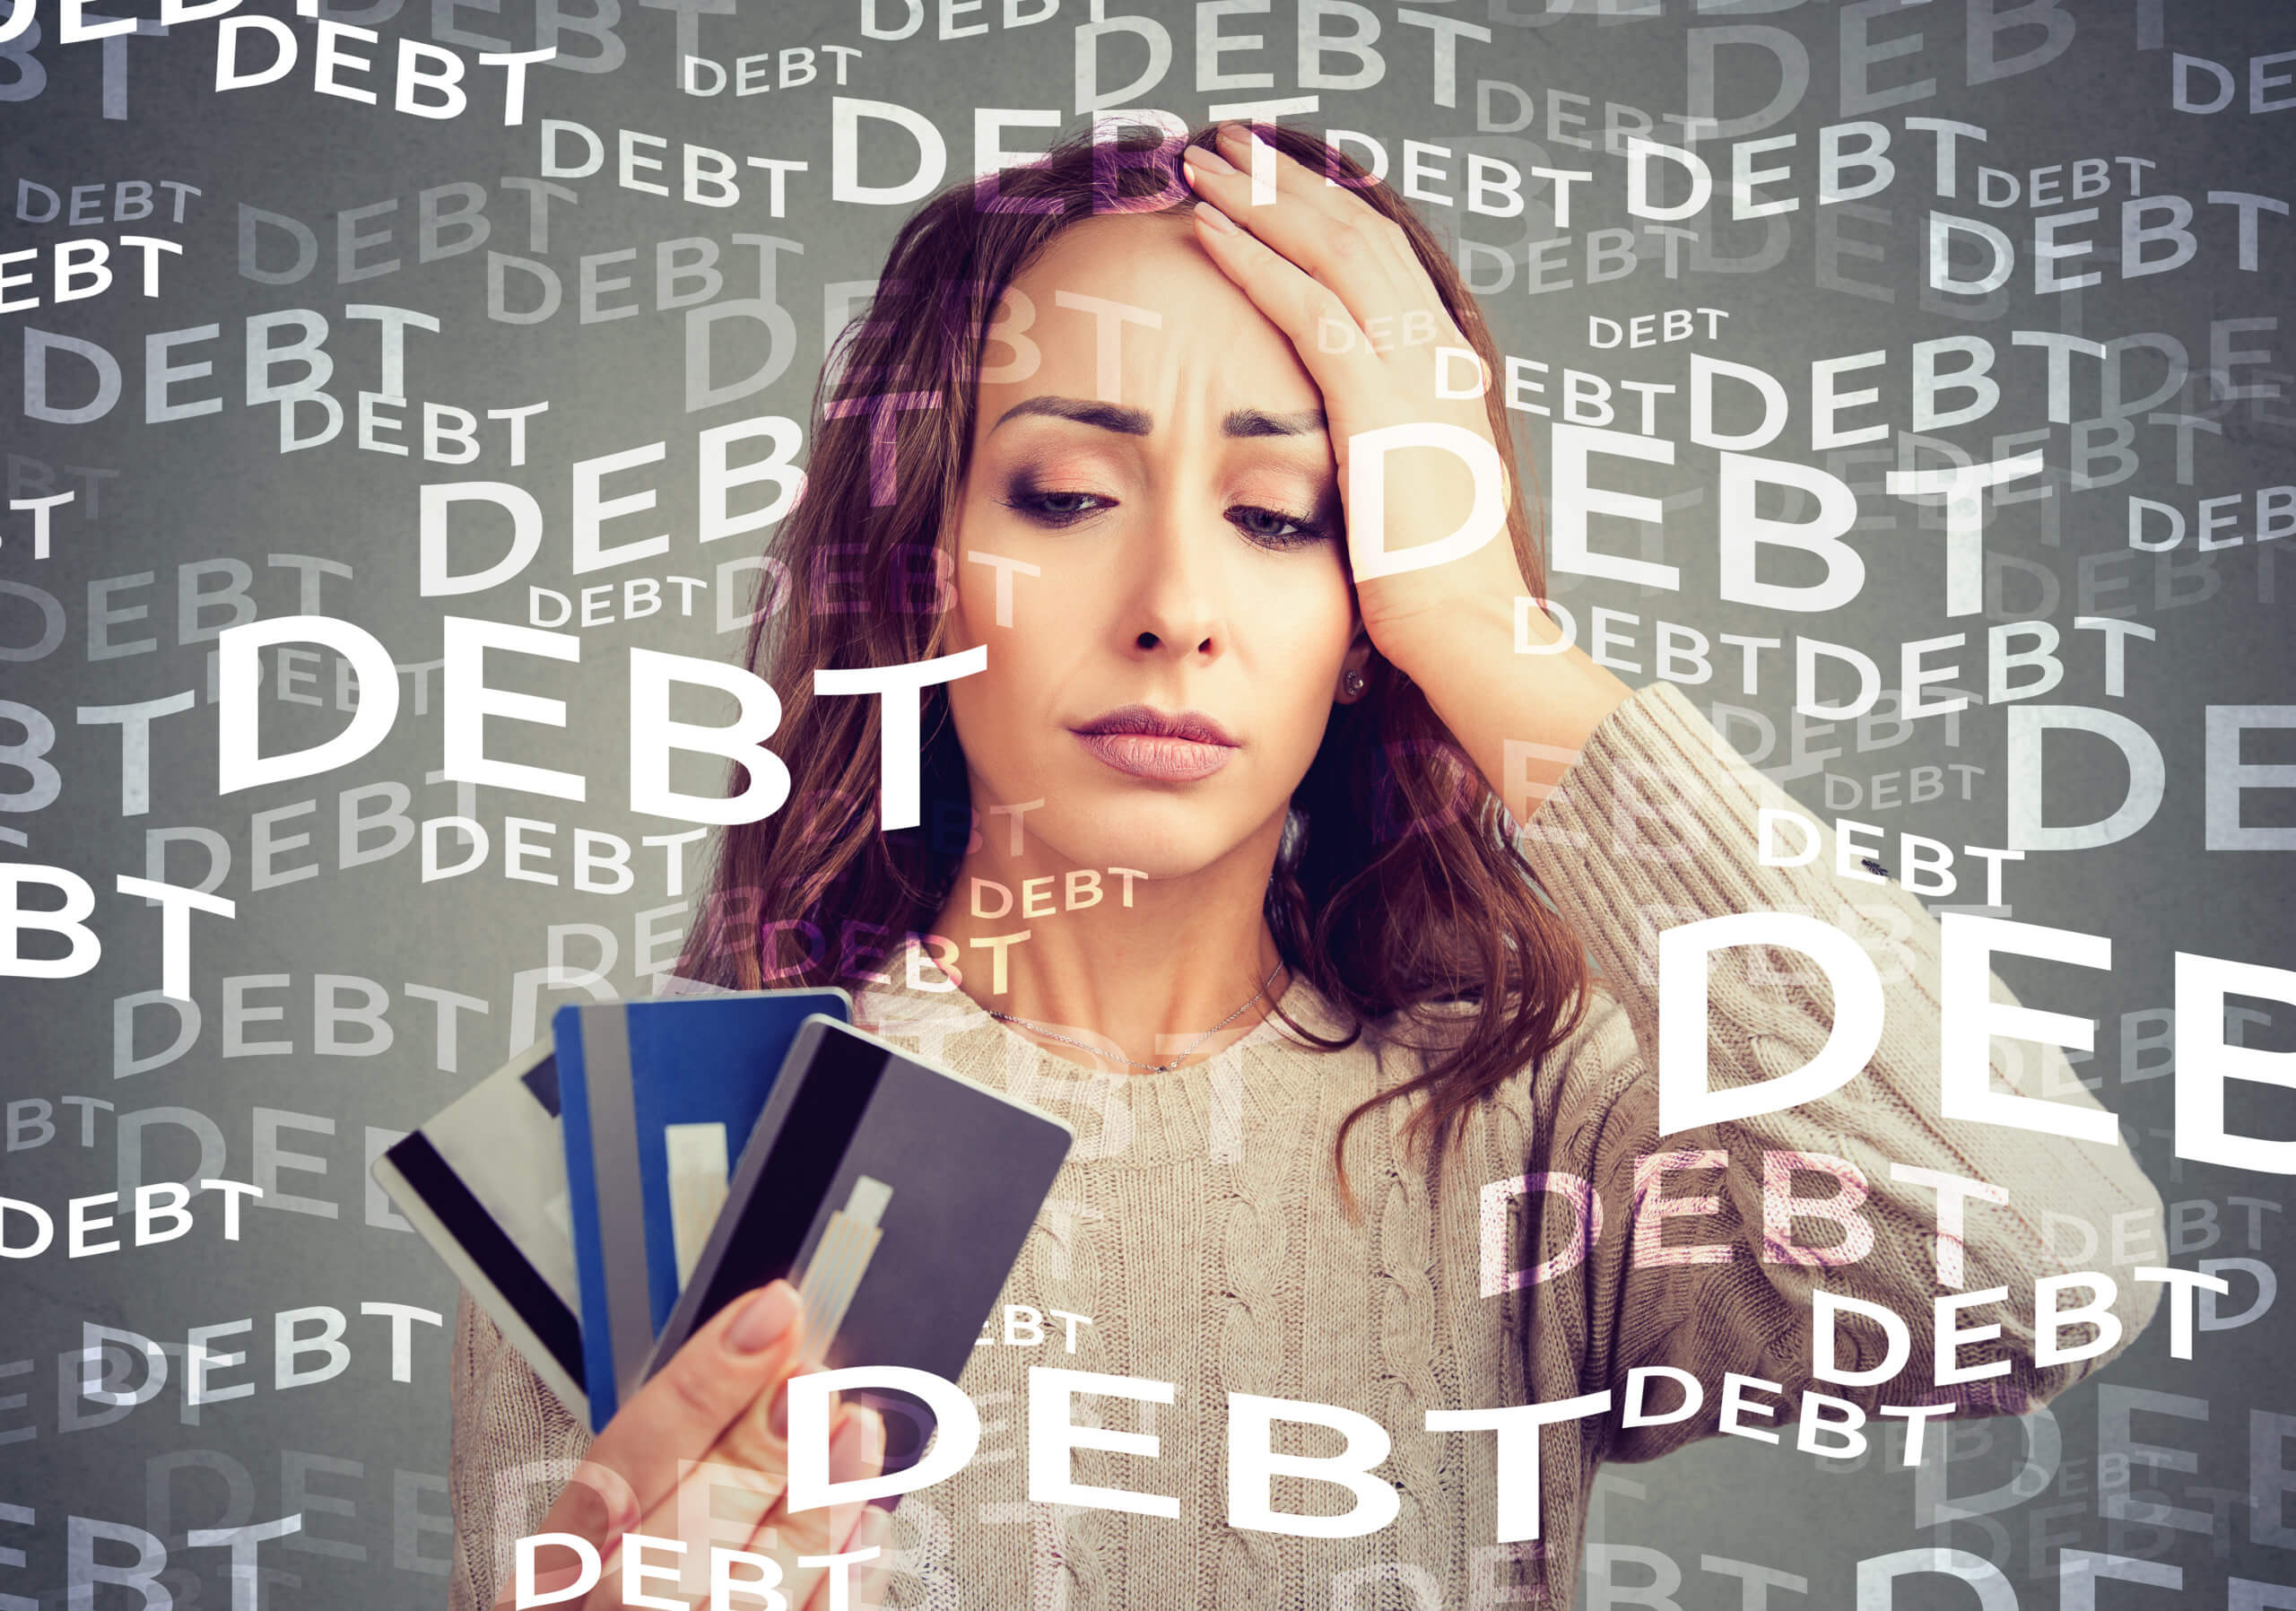 In Regards To Debt Consolidation, This Article Holds The Best Techniques